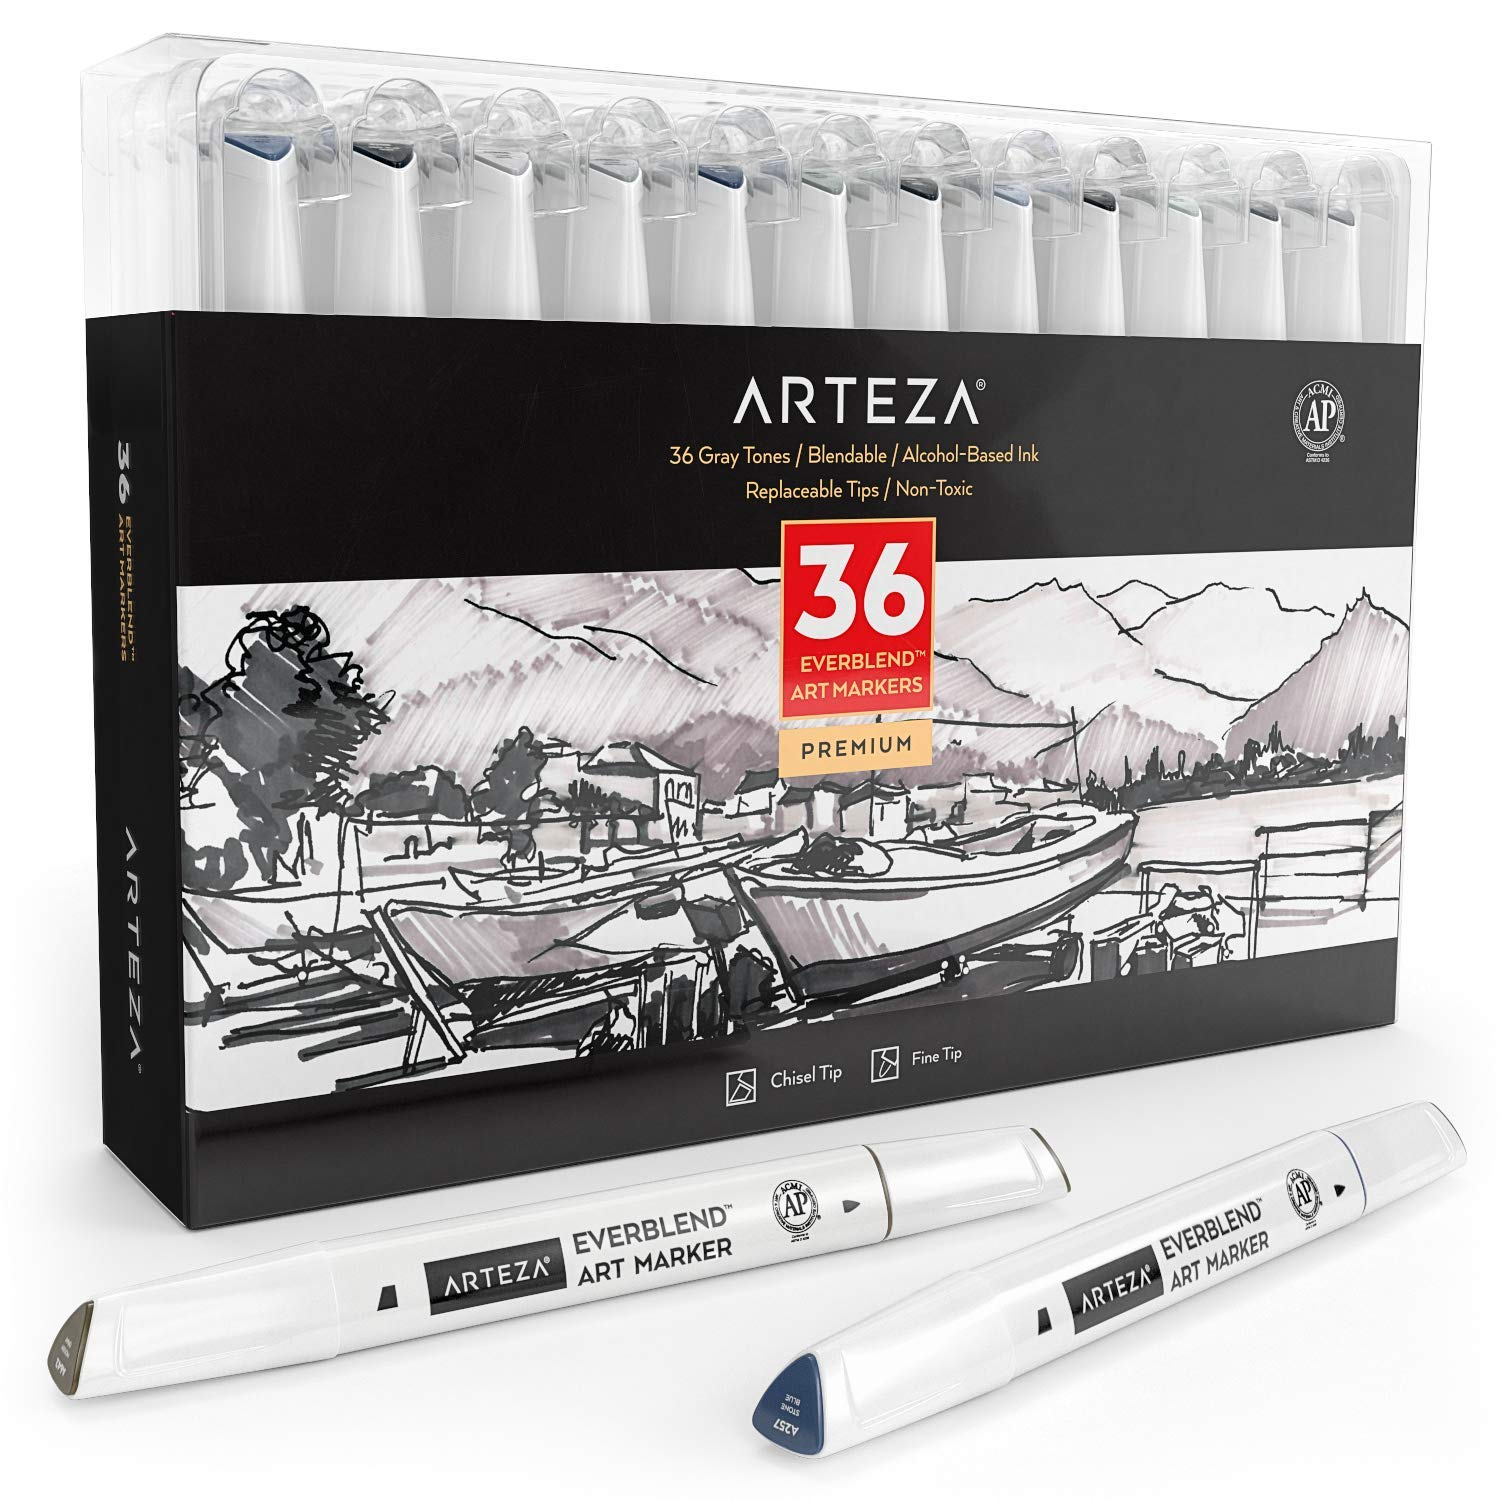 ARTEZA Everblend Gray Tone Art Markers, Set of 36 Colors, Alcohol Based Sketch Markers with Dual Tips (Fine and Broad Chisel) for Painting, Coloring, Sketching and Drawing